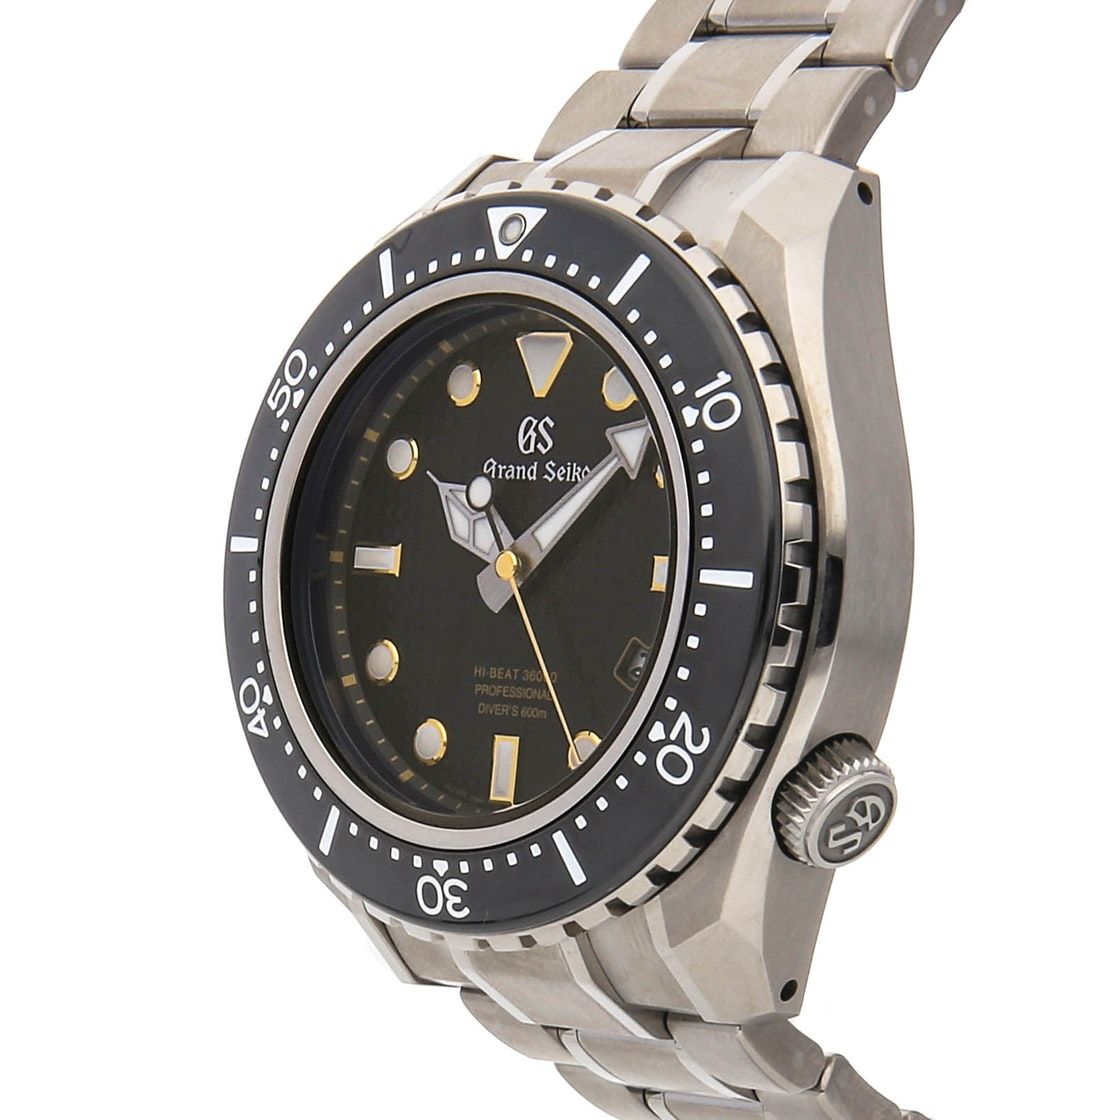 reputable site b7f9d 70a3c Grand Seiko Hi-Beat 36000 Professional Diver SBGH255